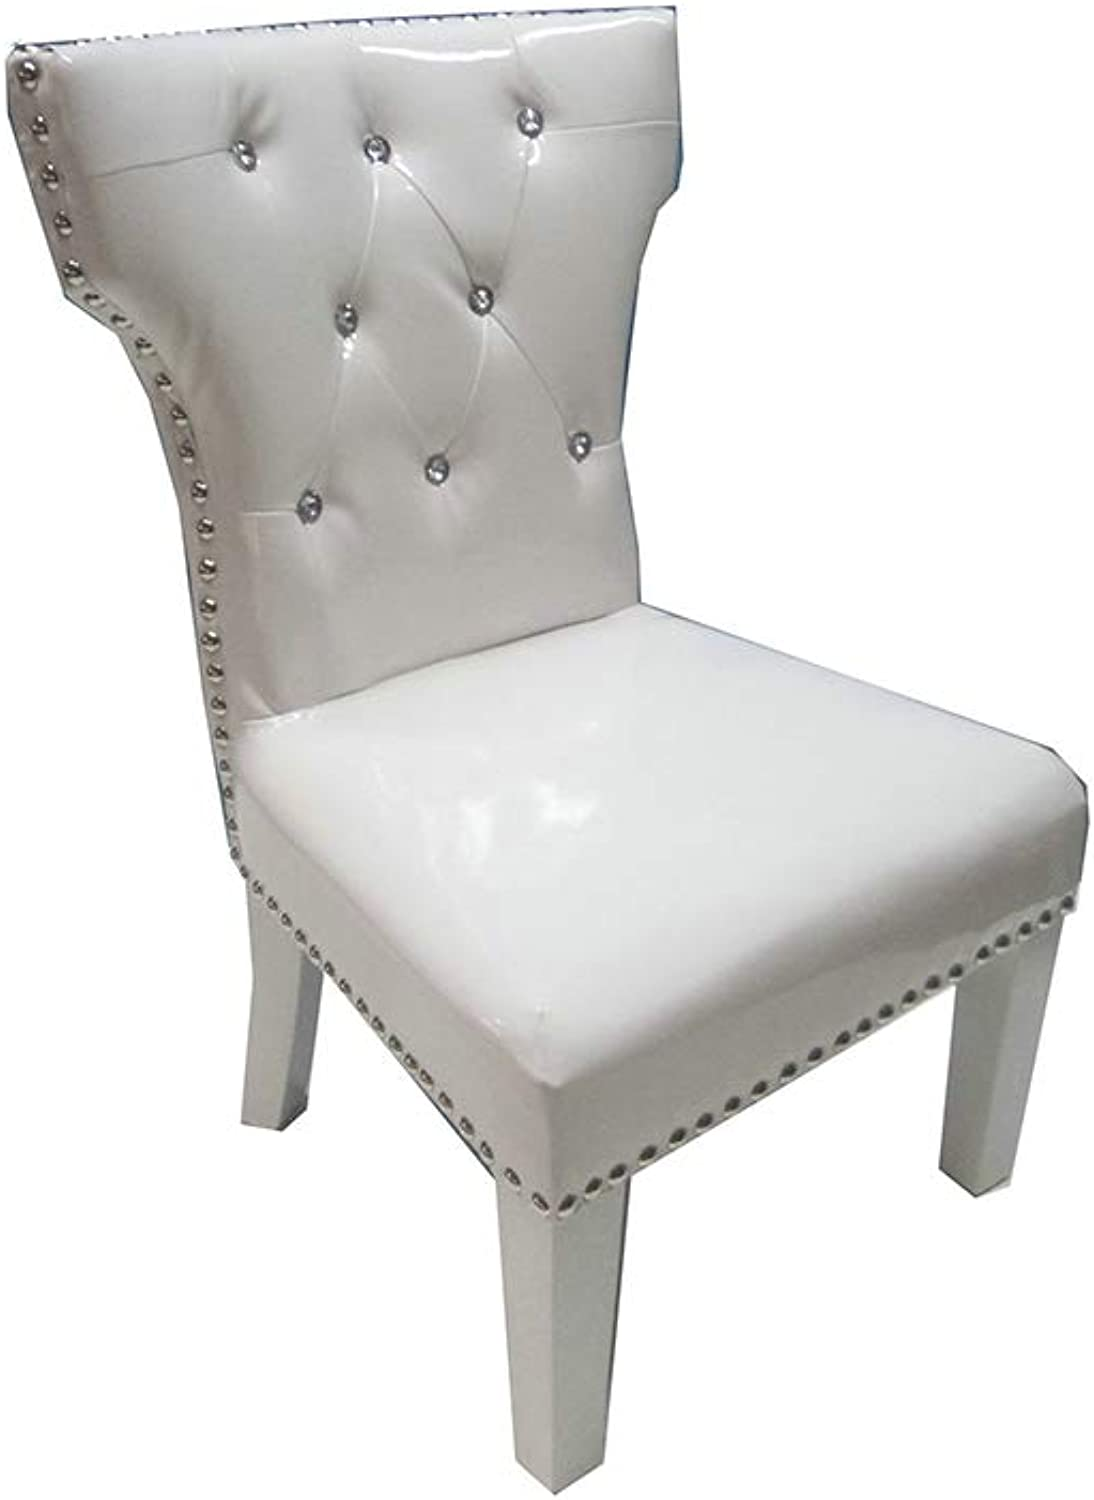 White Chair with Studs By Tickle Toes